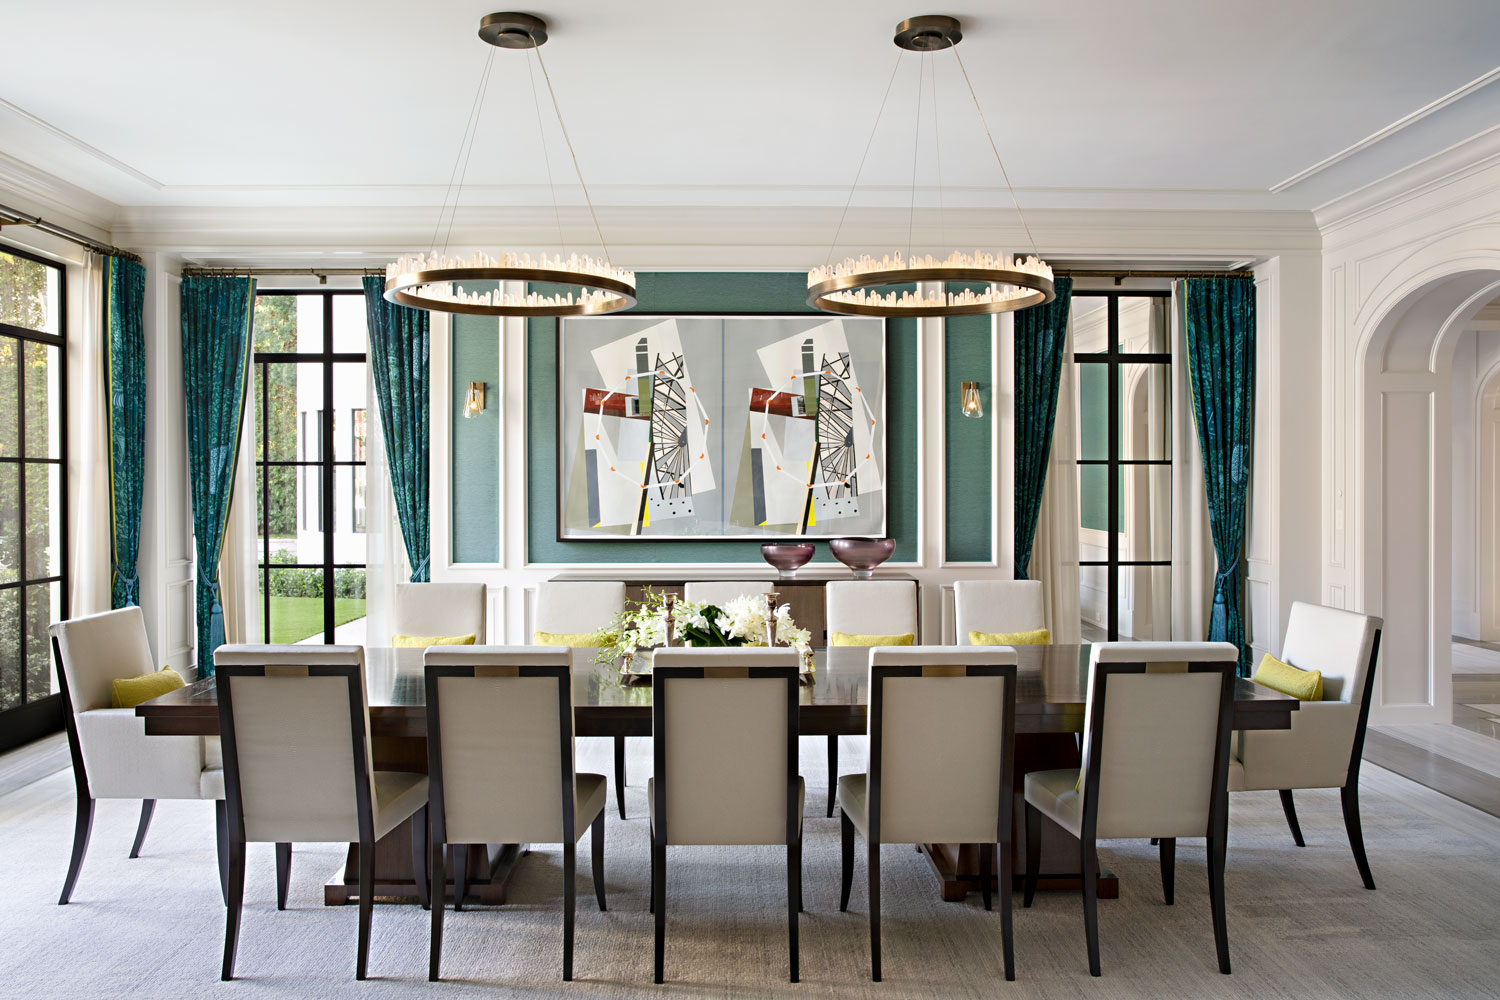 12-transitional-dining-room-paneled-walls-gary-drake-general-contractor.jpg